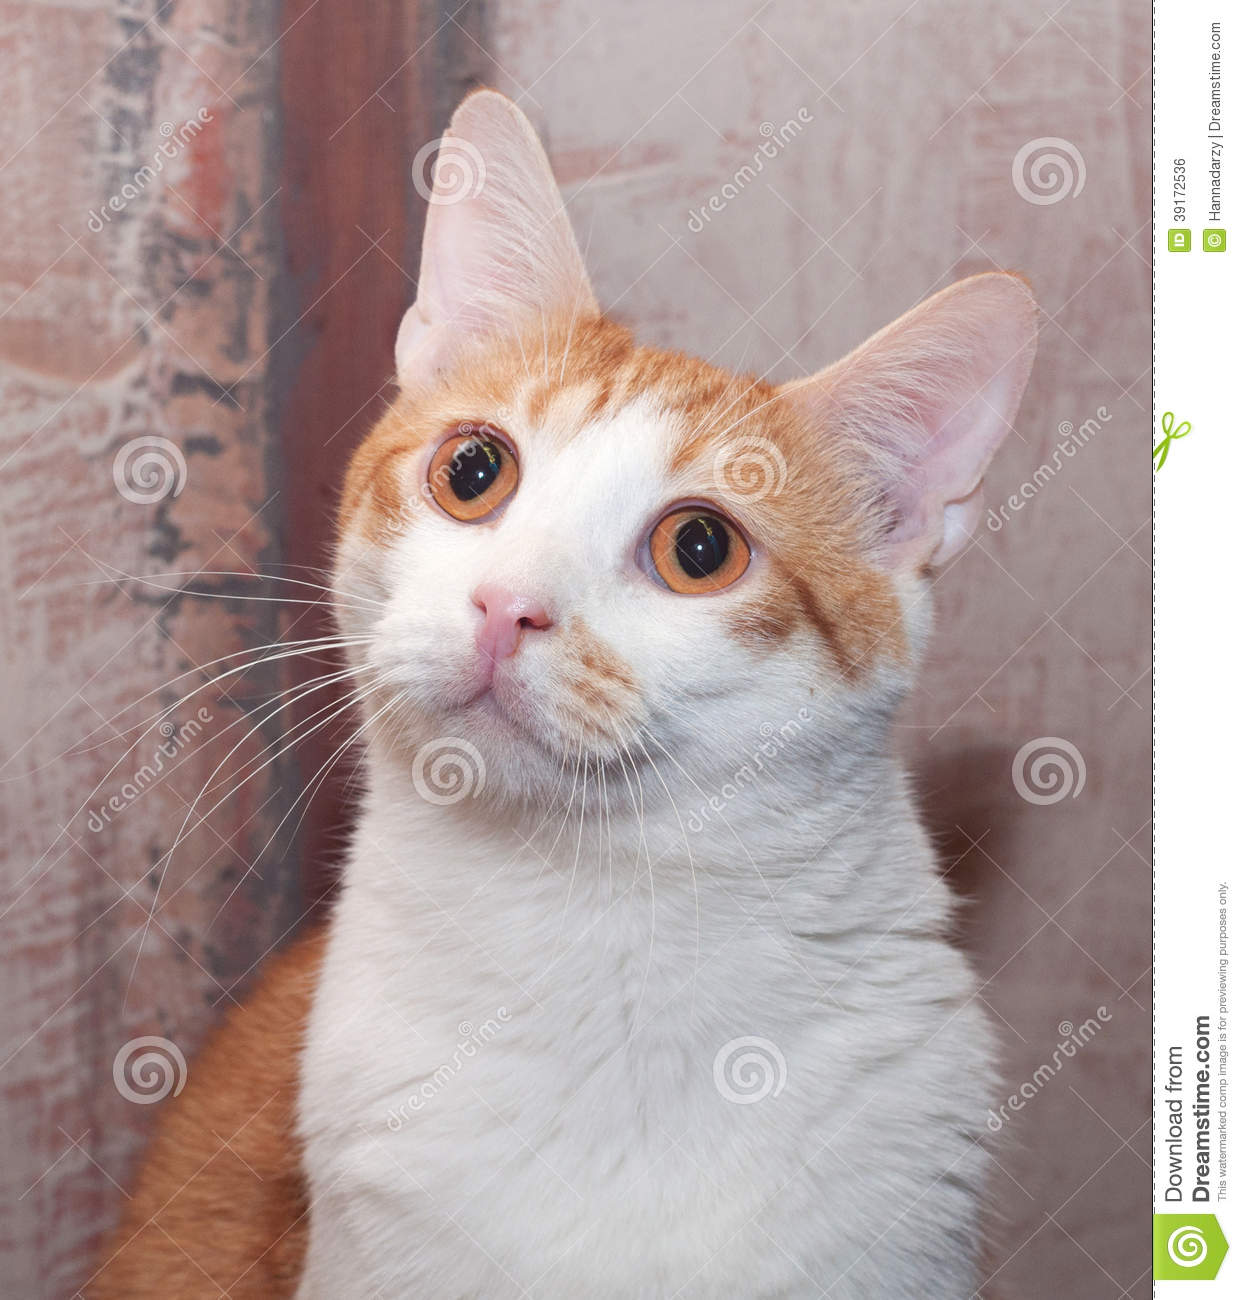 Ginger And White Cat With Orange Eyes Stock Photo - Image ... White Cat With Orange Eyes